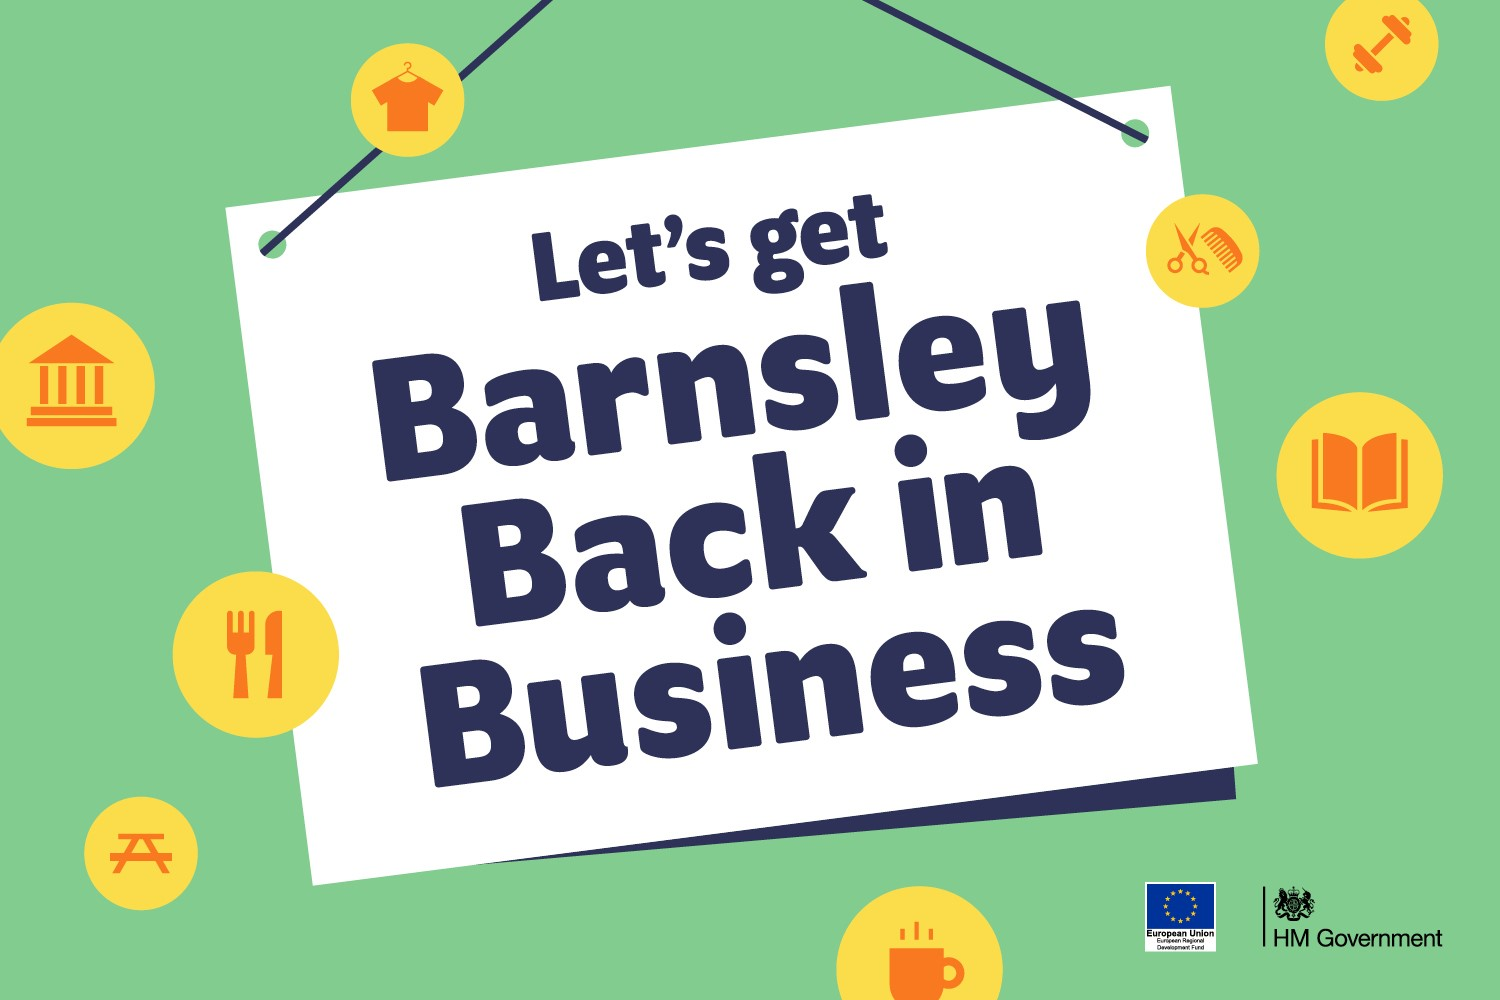 'Let's get Barnsley back in business' printed on a sign